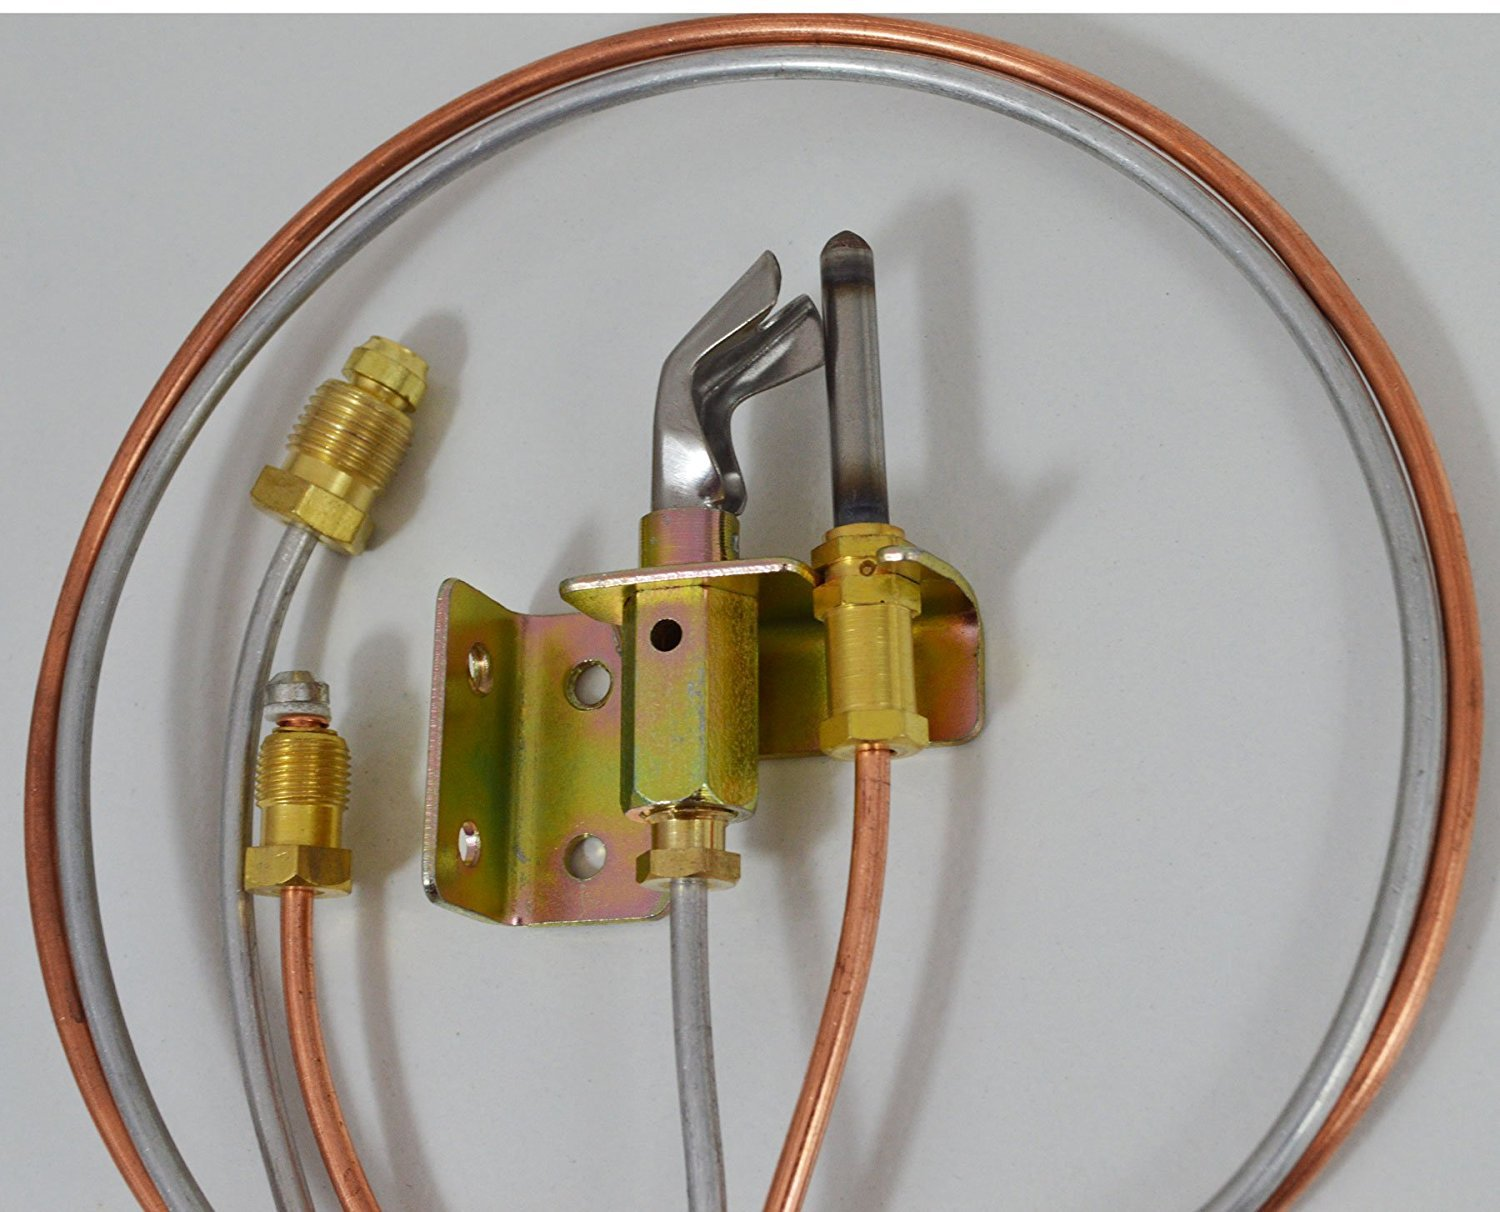 Water Heater Pilot Assembely Includes Thermocouple And Tubing Assembly For Furnace Wiring Natural Gas